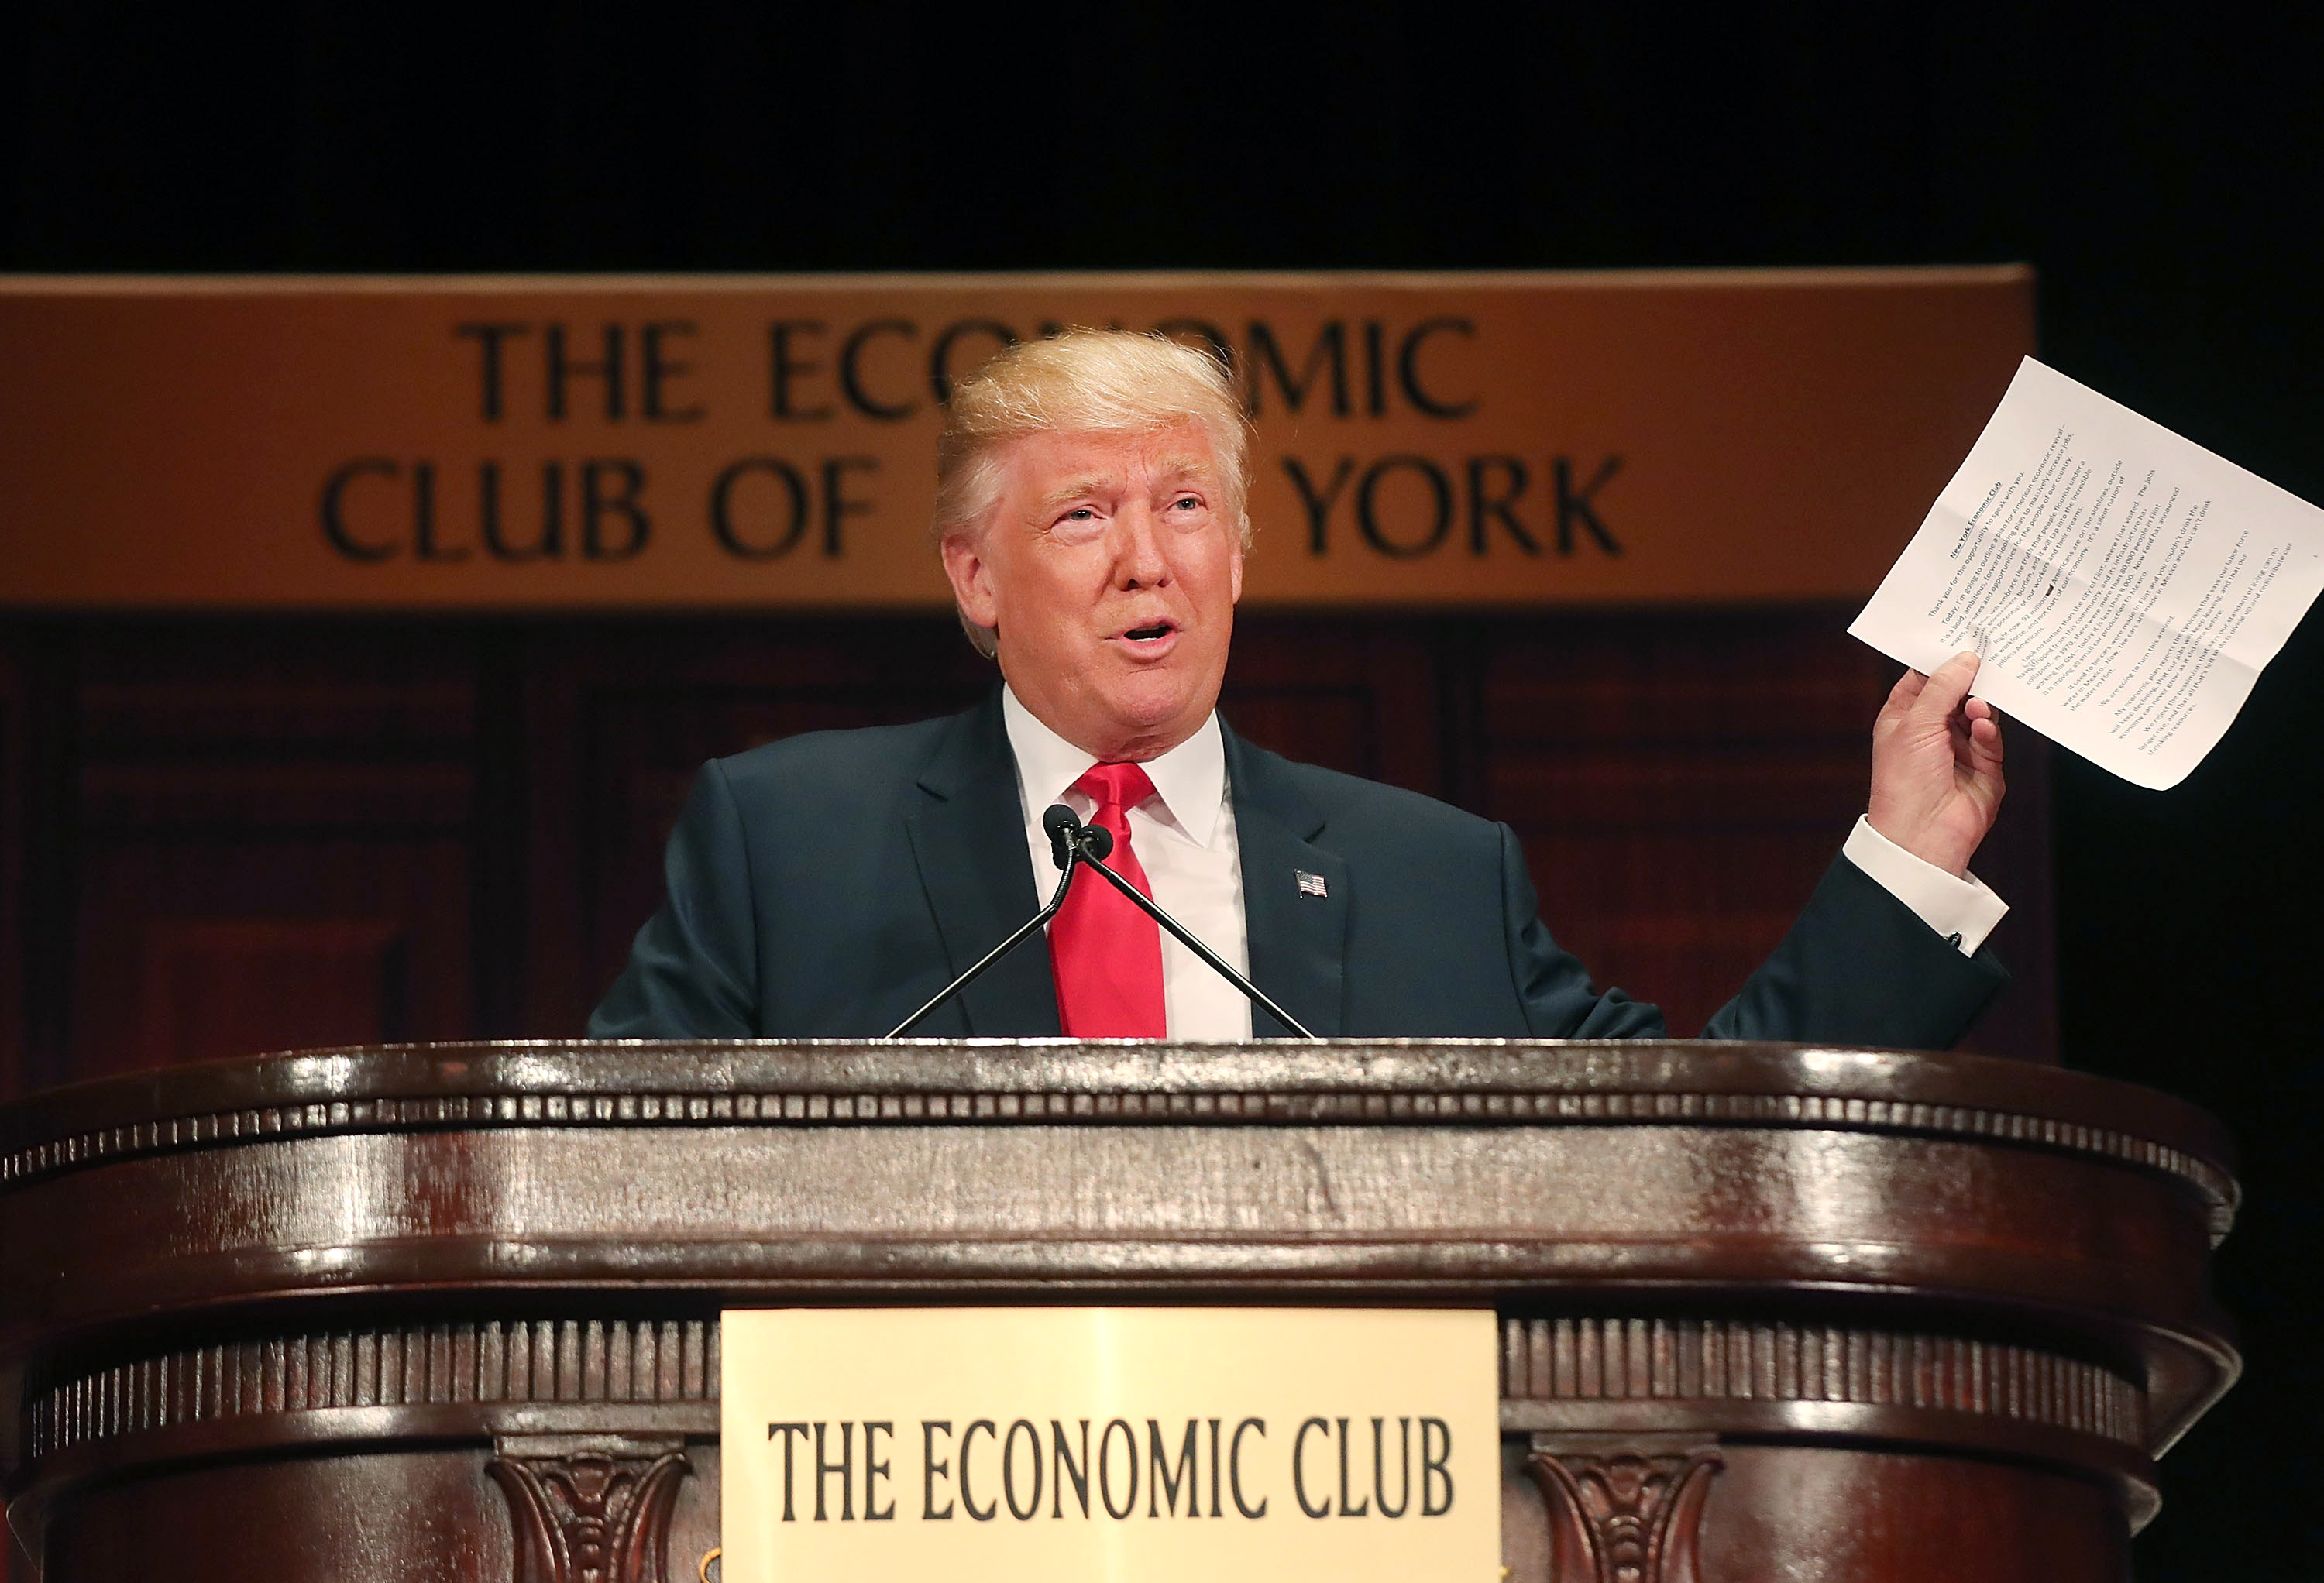 Republican presidential candidate Donald Trump speaks at a lunch hosted by the Economic Club of New York on September 15, 2016 in New York City. According to a report by Oxford Economics, if Trump is elected to the White House growth in the US would be about 5 per cent lower than would otherwise be expected by 2021.